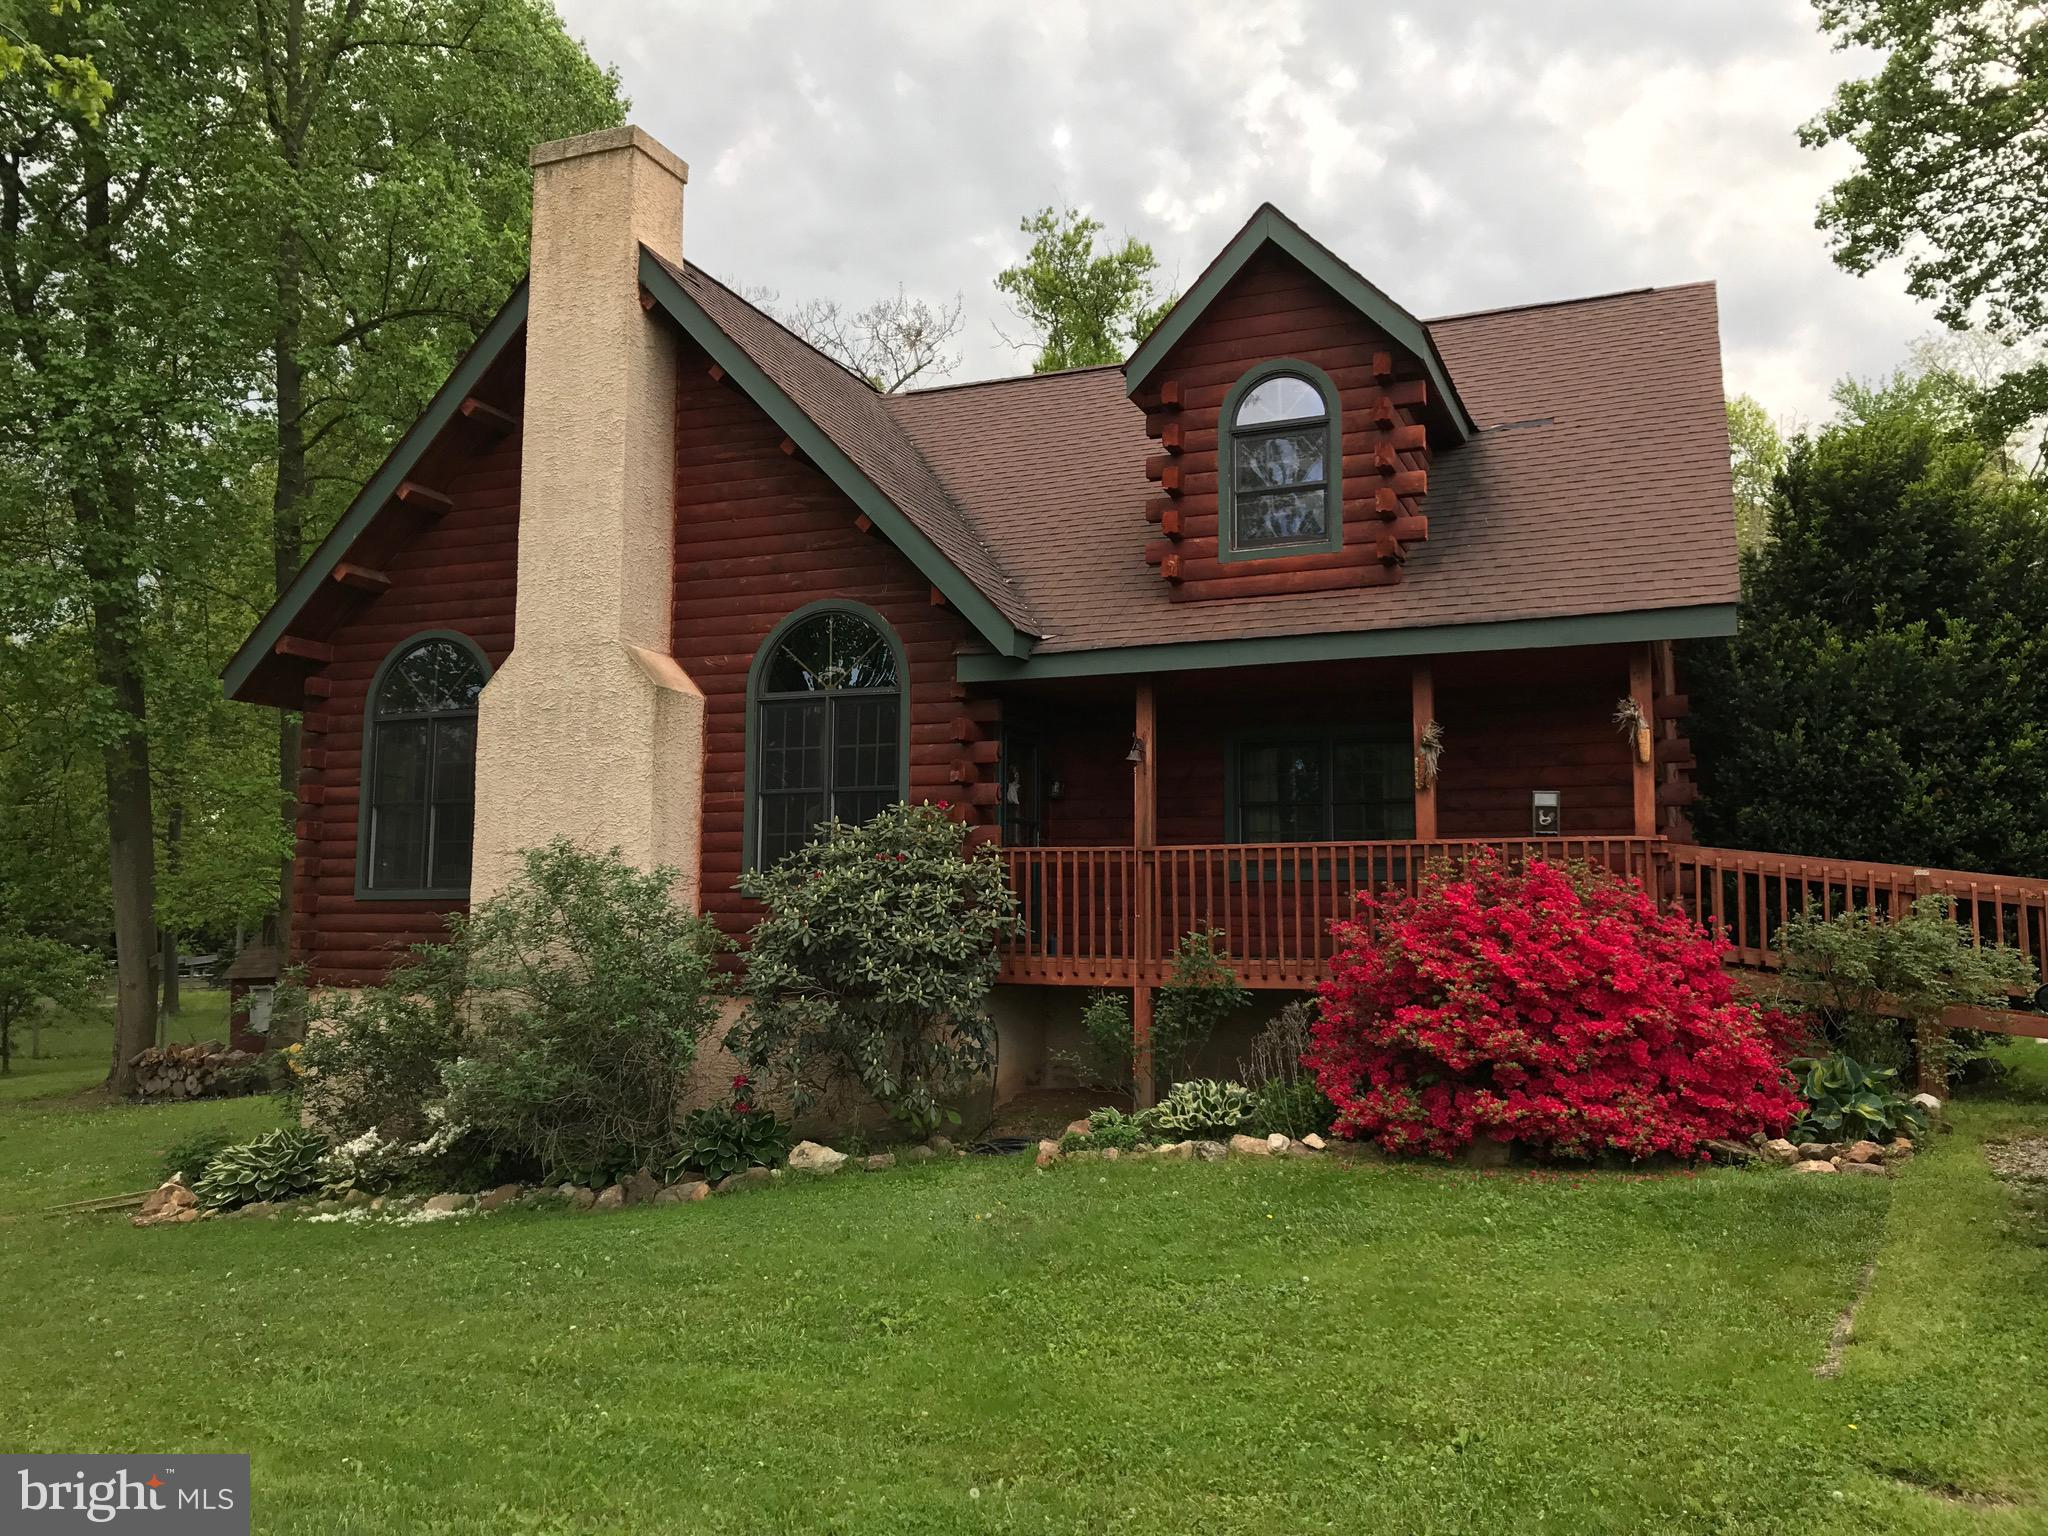 20 CHIMIENTI DRIVE, WEST GROVE, PA 19390